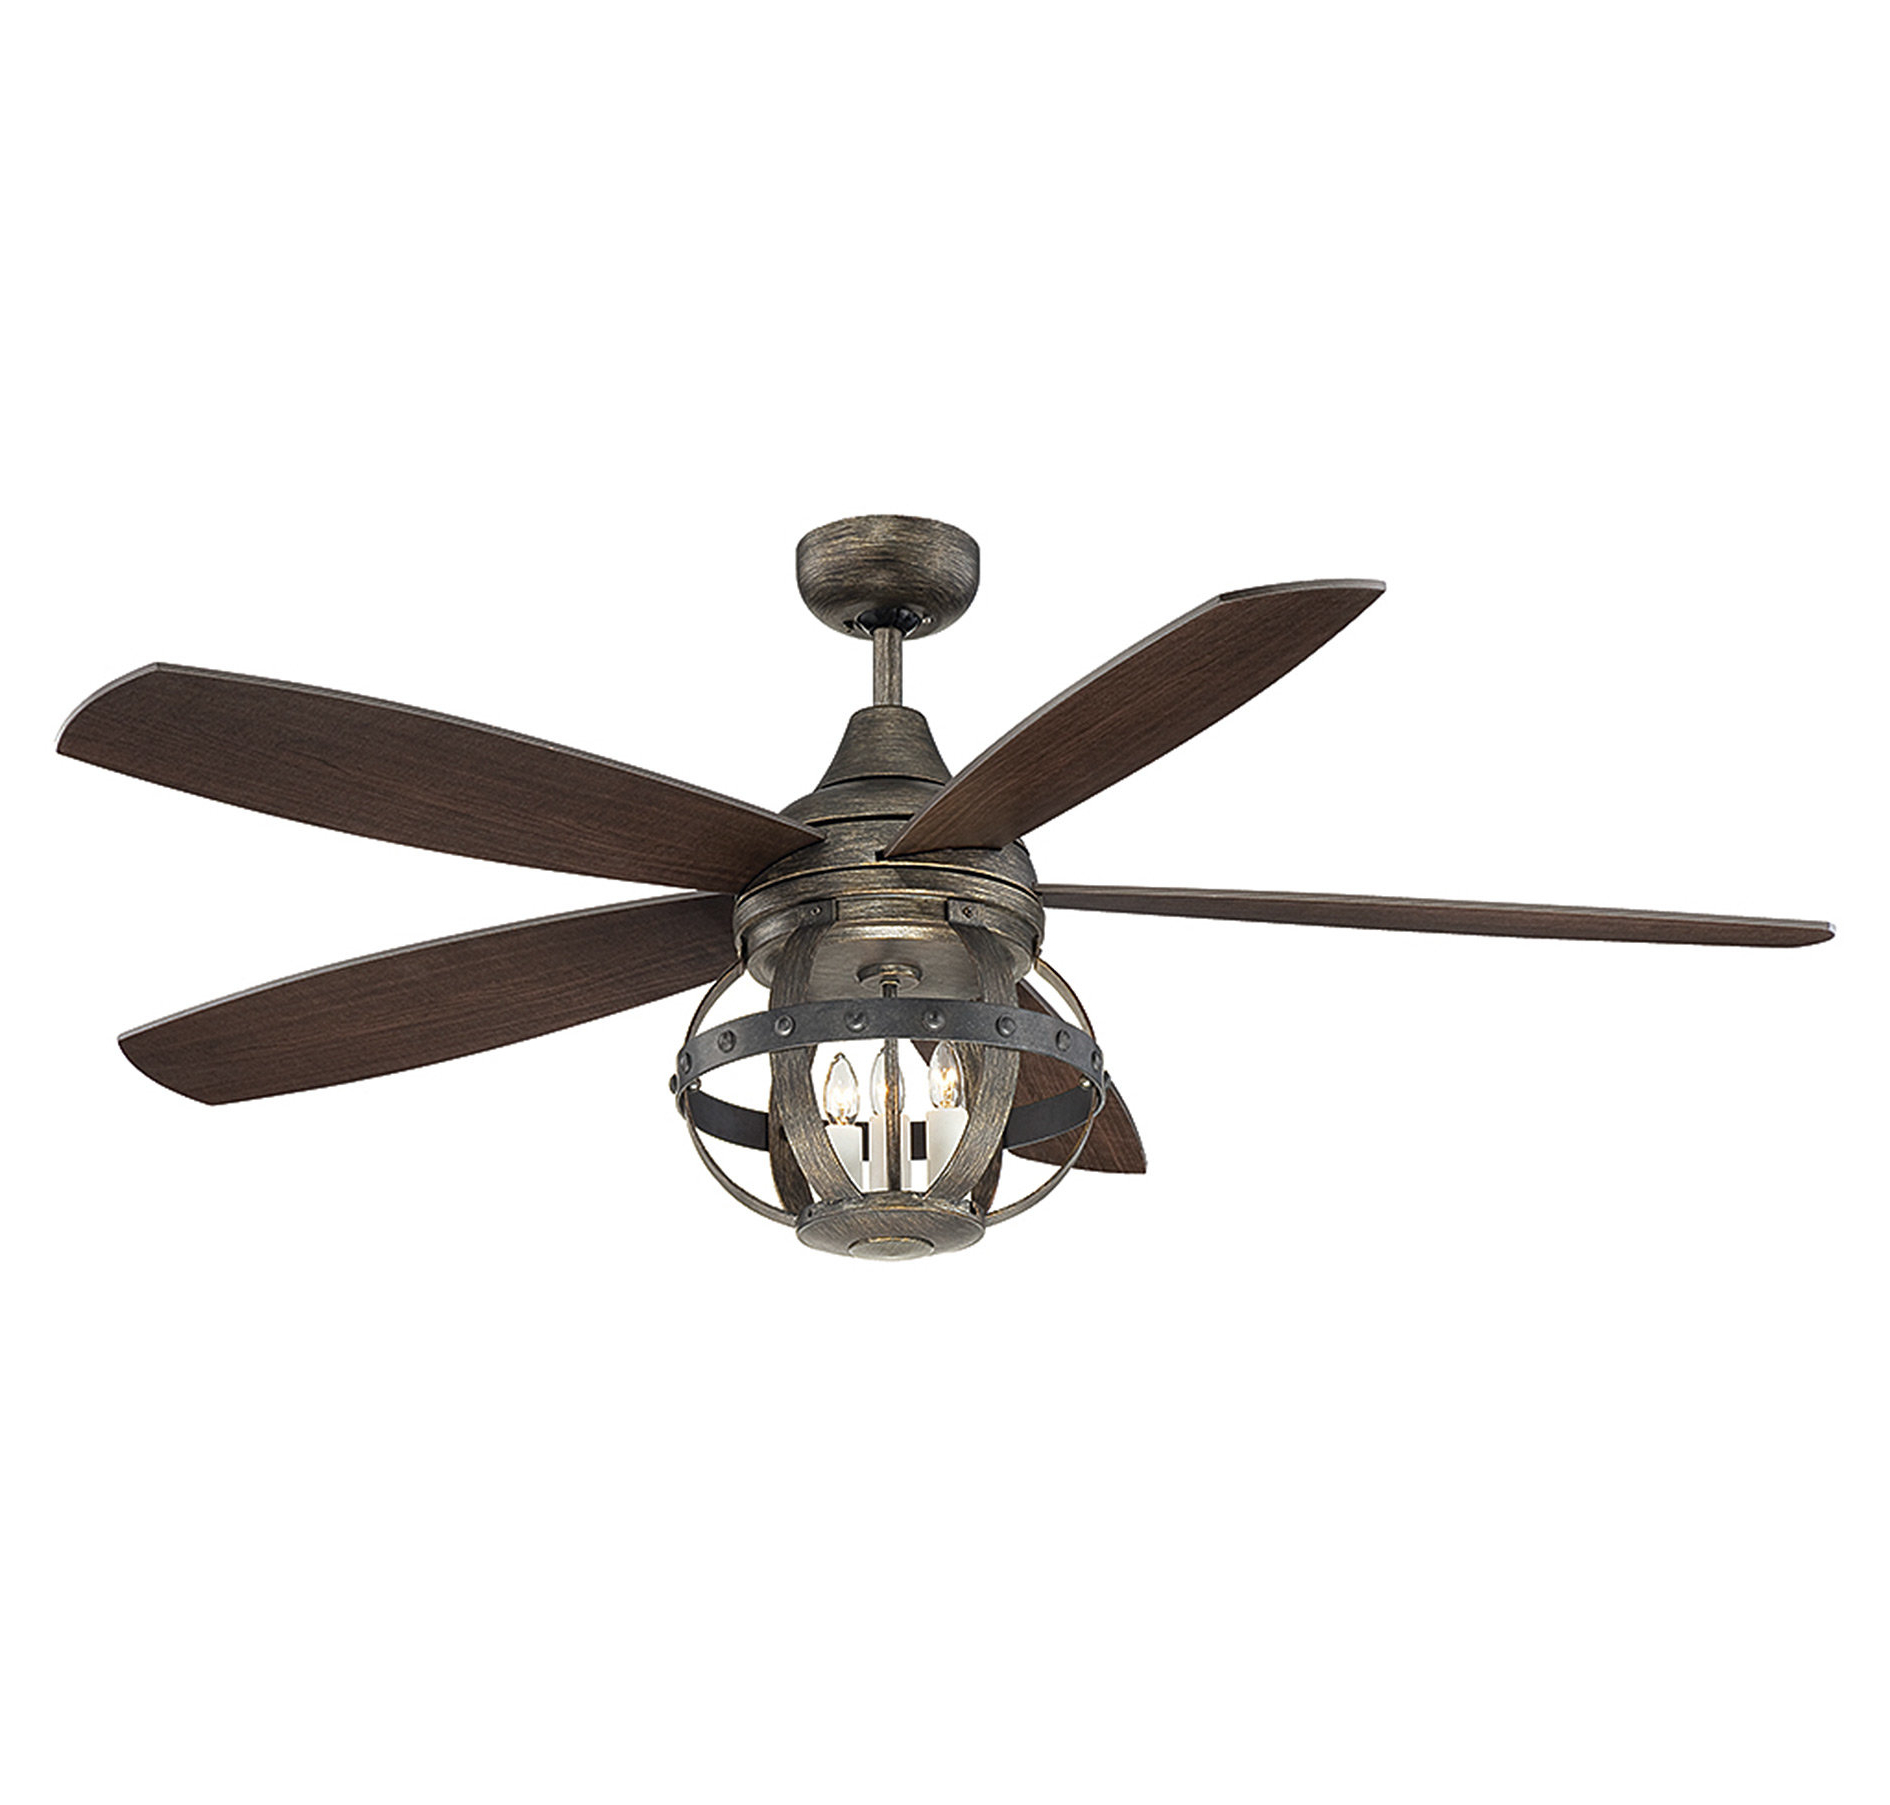 "52"" Wilburton 5 Blade Ceiling Fan With Remote, Light Kit Included Intended For Well Liked Bennett 5 Blade Ceiling Fans With Remote (View 4 of 20)"